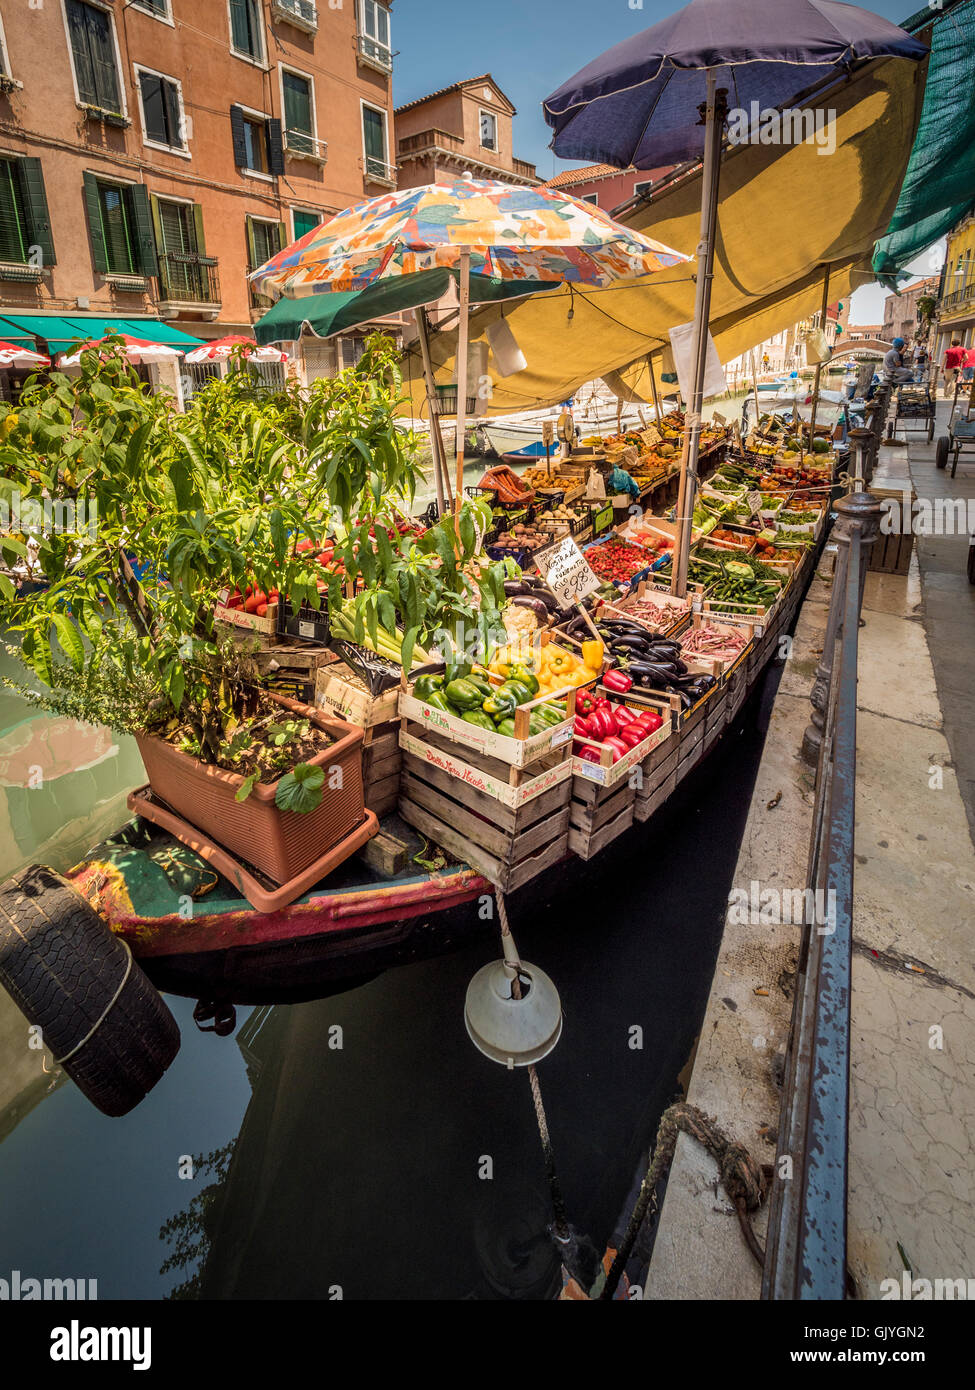 Moored barge selling fruit and vegetables, on the Rio de S. Ana, Venice. - Stock Image